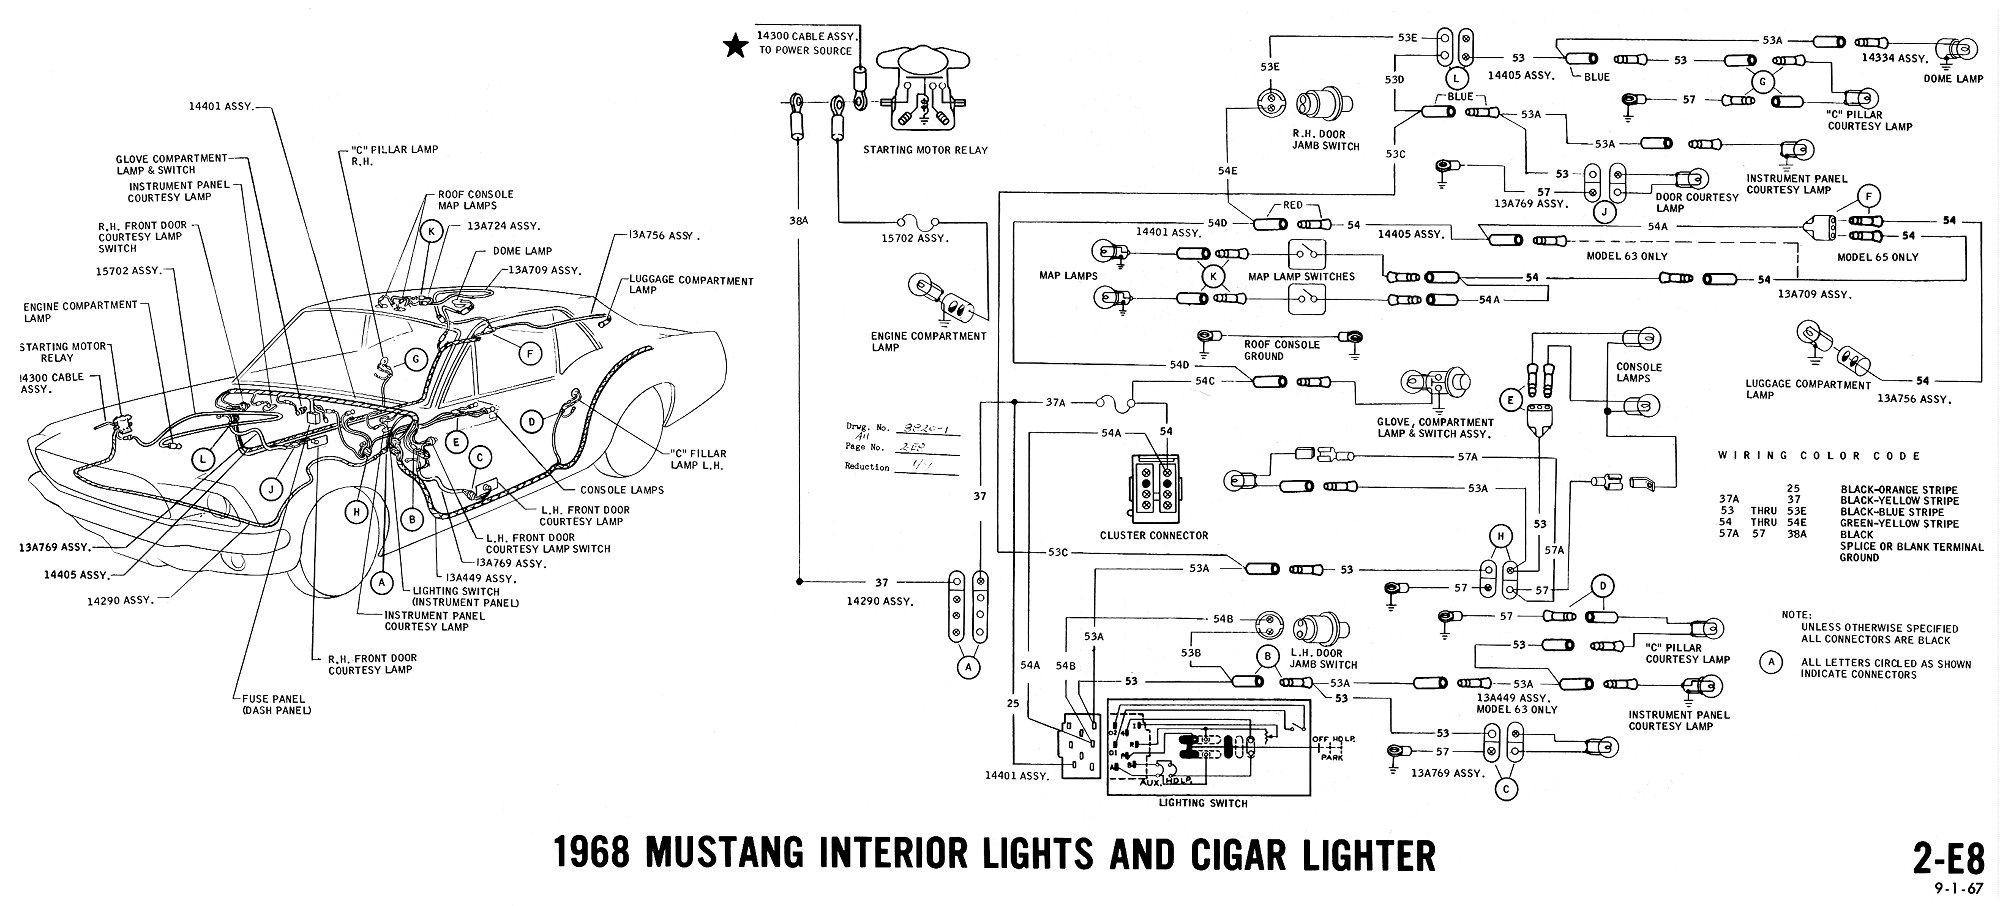 95 Mustang Horn Wiring Diagrams Library Drag Racing Engine 1968 Evolving Software Race Schematic Cigar Lighter Interior Lights